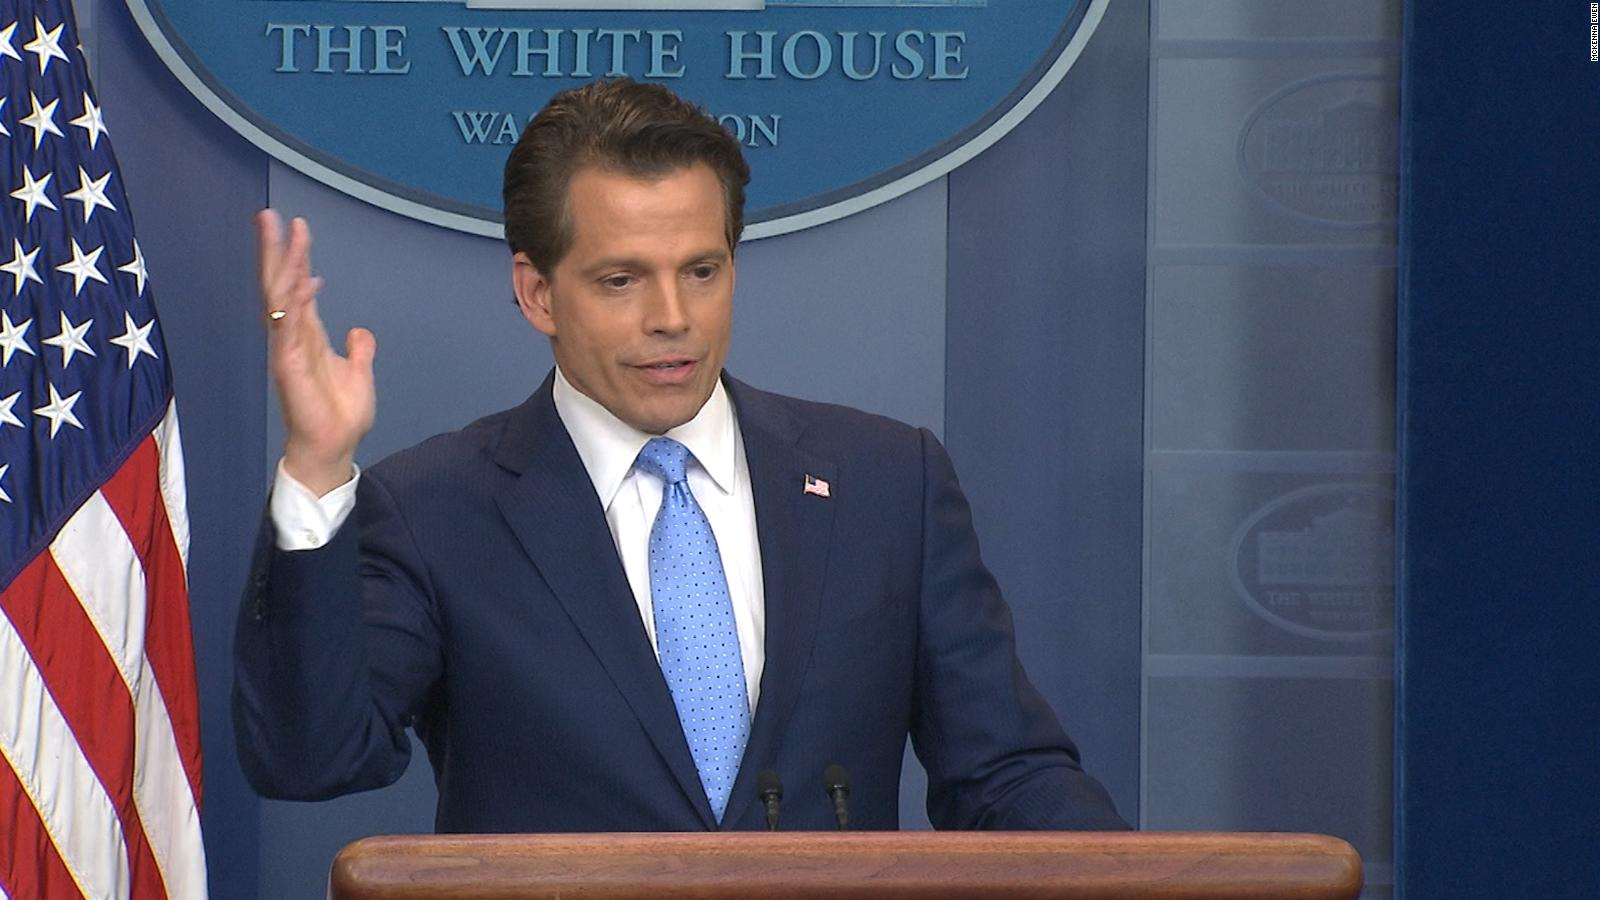 anthony scaramucci out as wh communications director - cnnpolitics